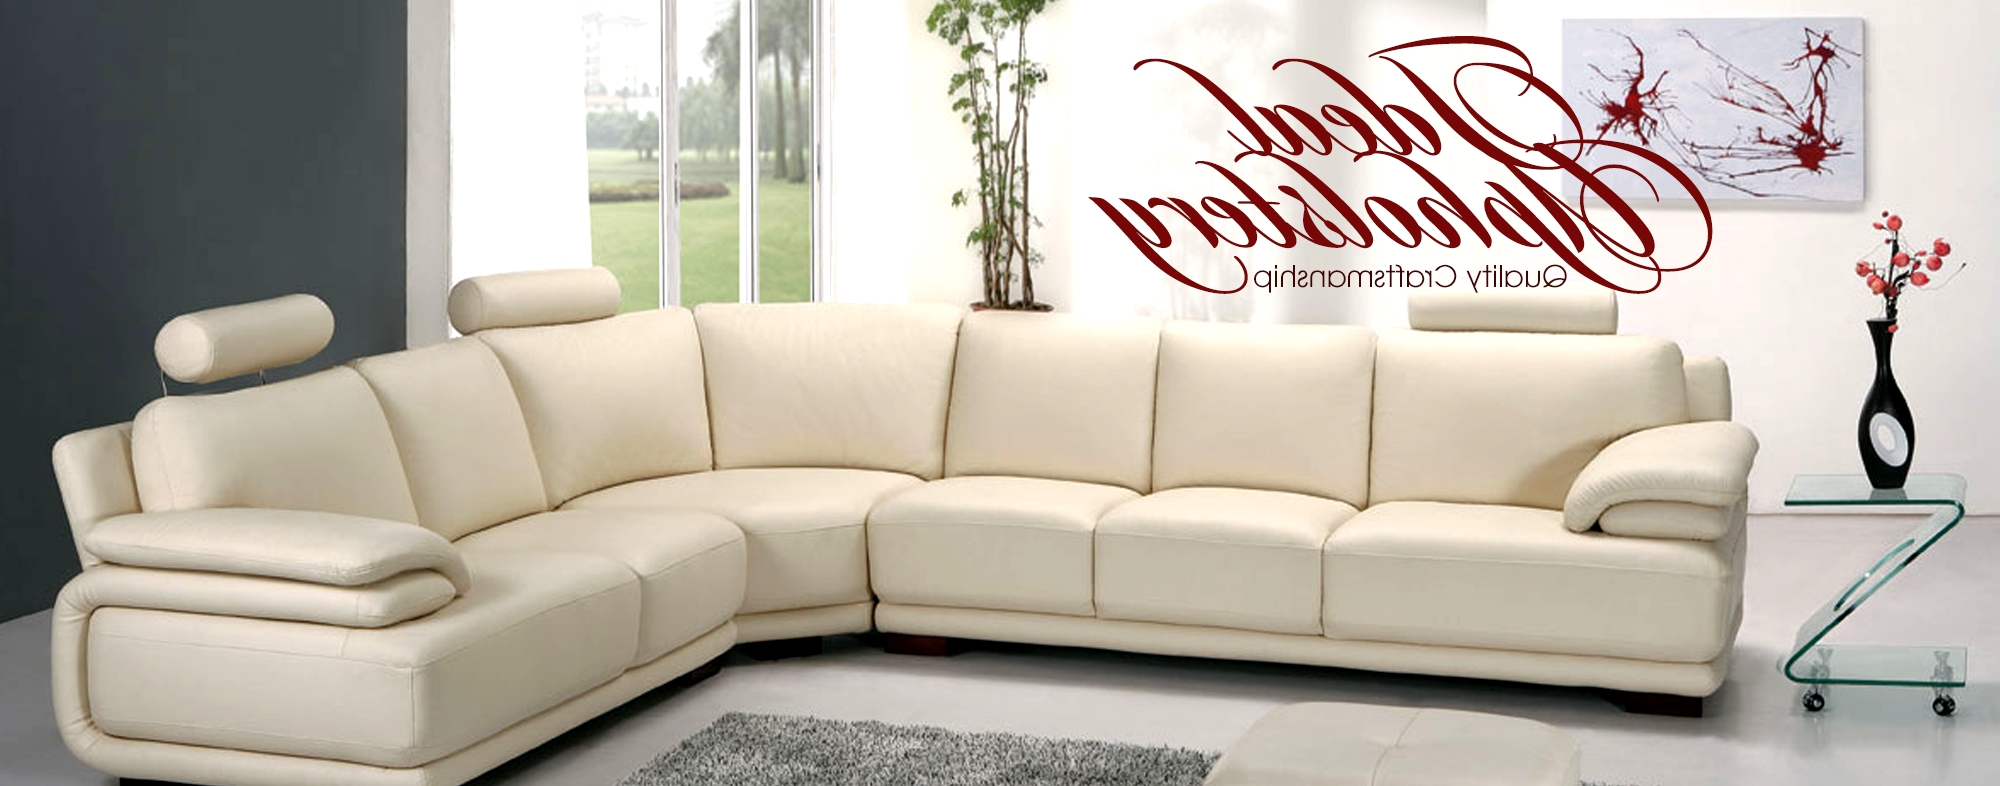 Most Popular Ventura County Sectional Sofas Regarding Ventura And Malibu Upholstery – Sofas, Loveseats, Chairs, Antiques (View 15 of 20)